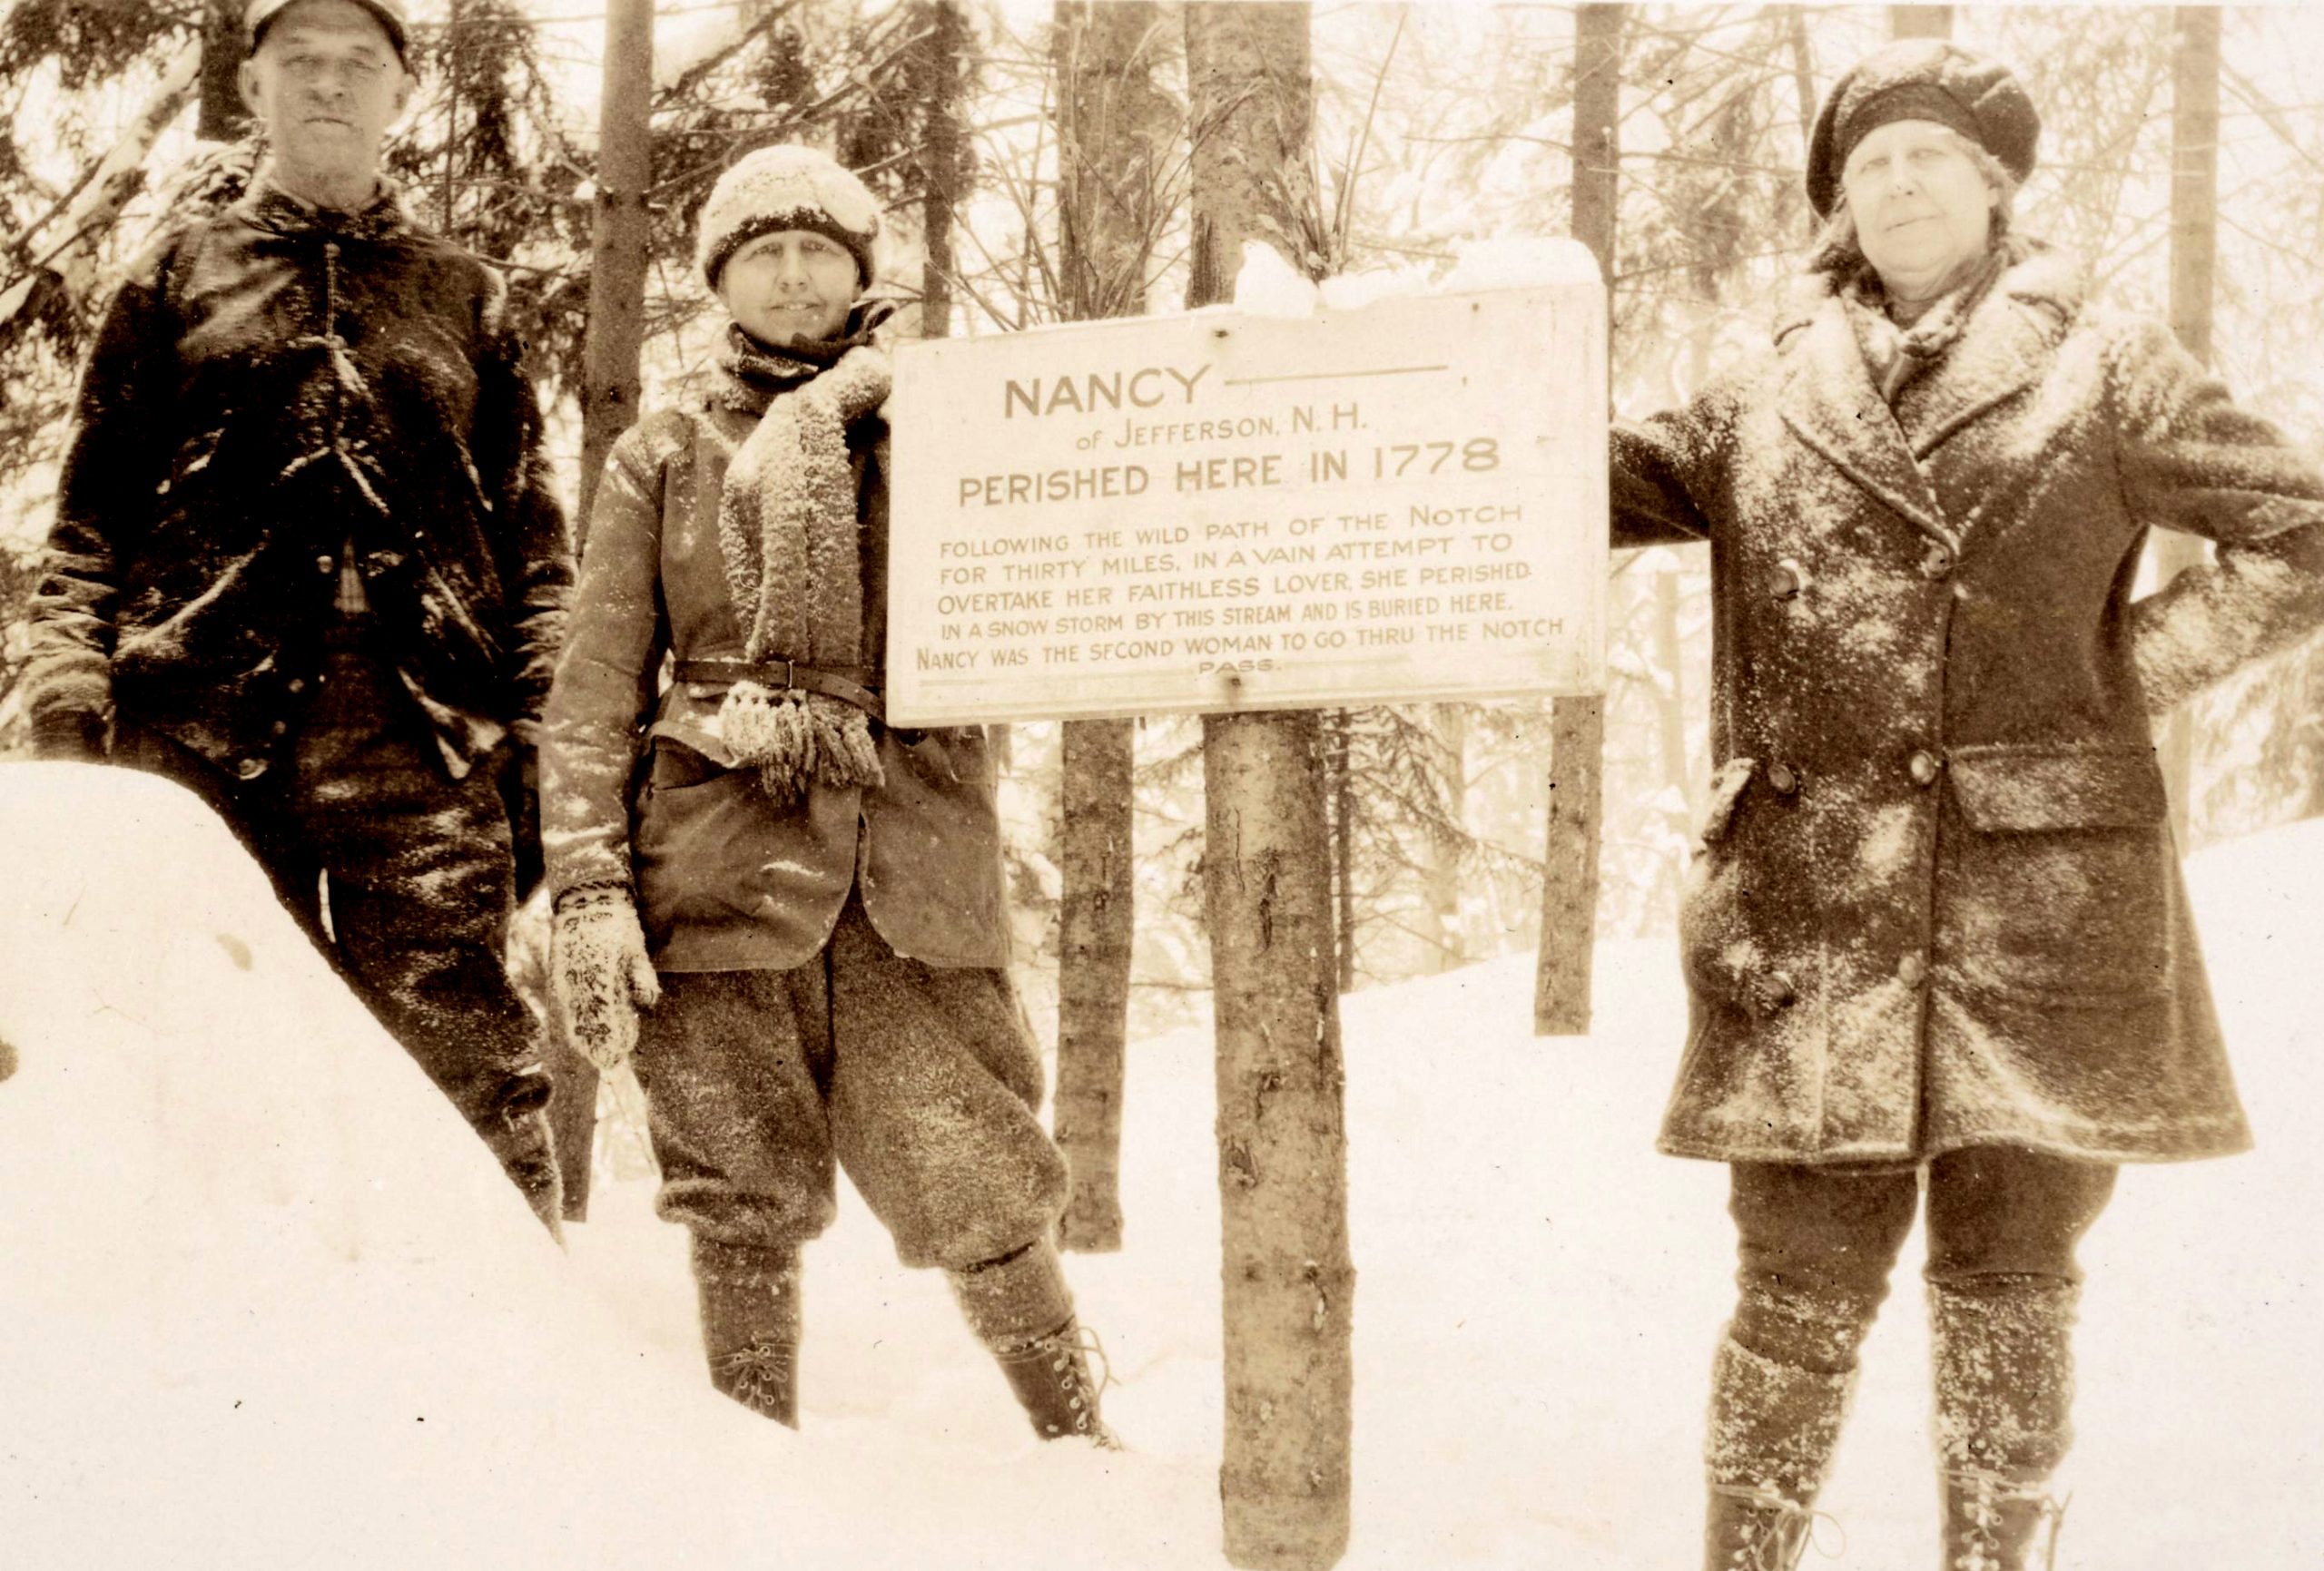 Some hikers stand near a sign marking where Nancy Barton is buried.